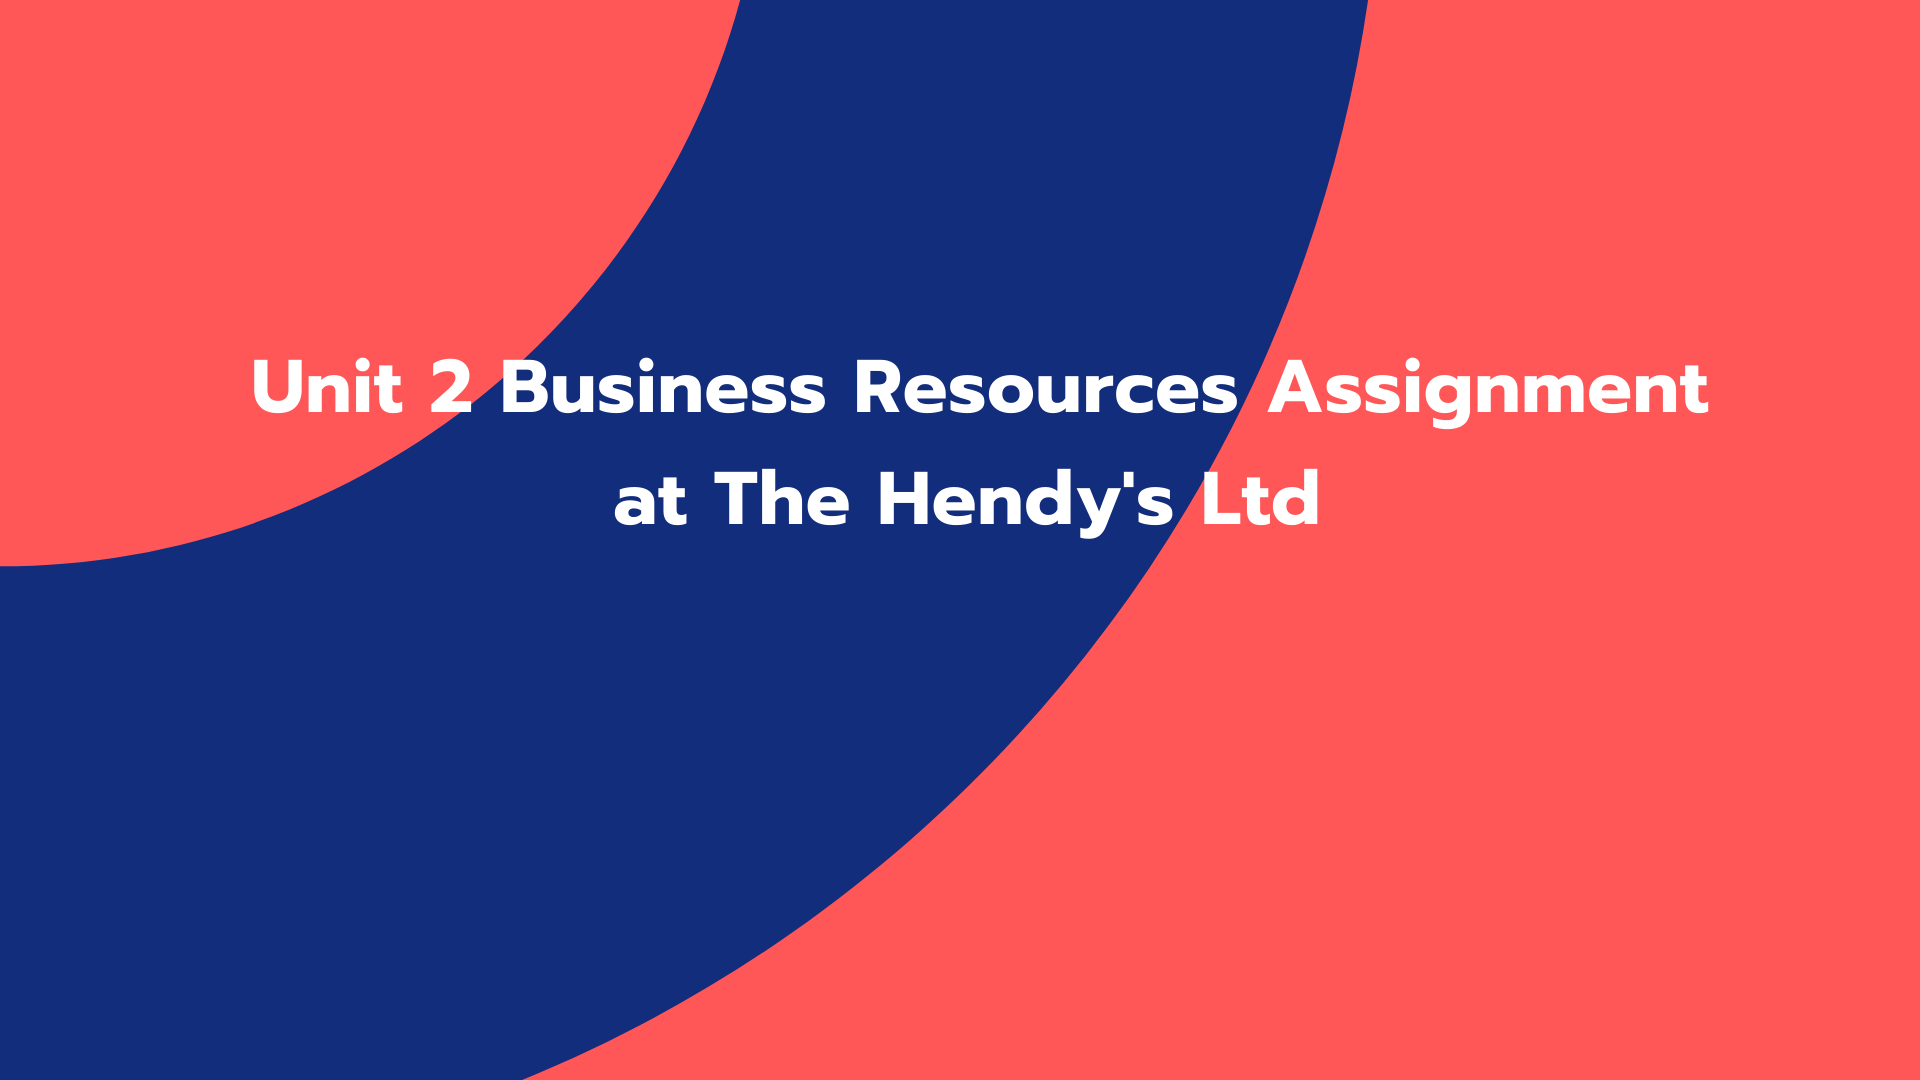 Unit 2 Business Resources Assignment at The Hendy's Ltd